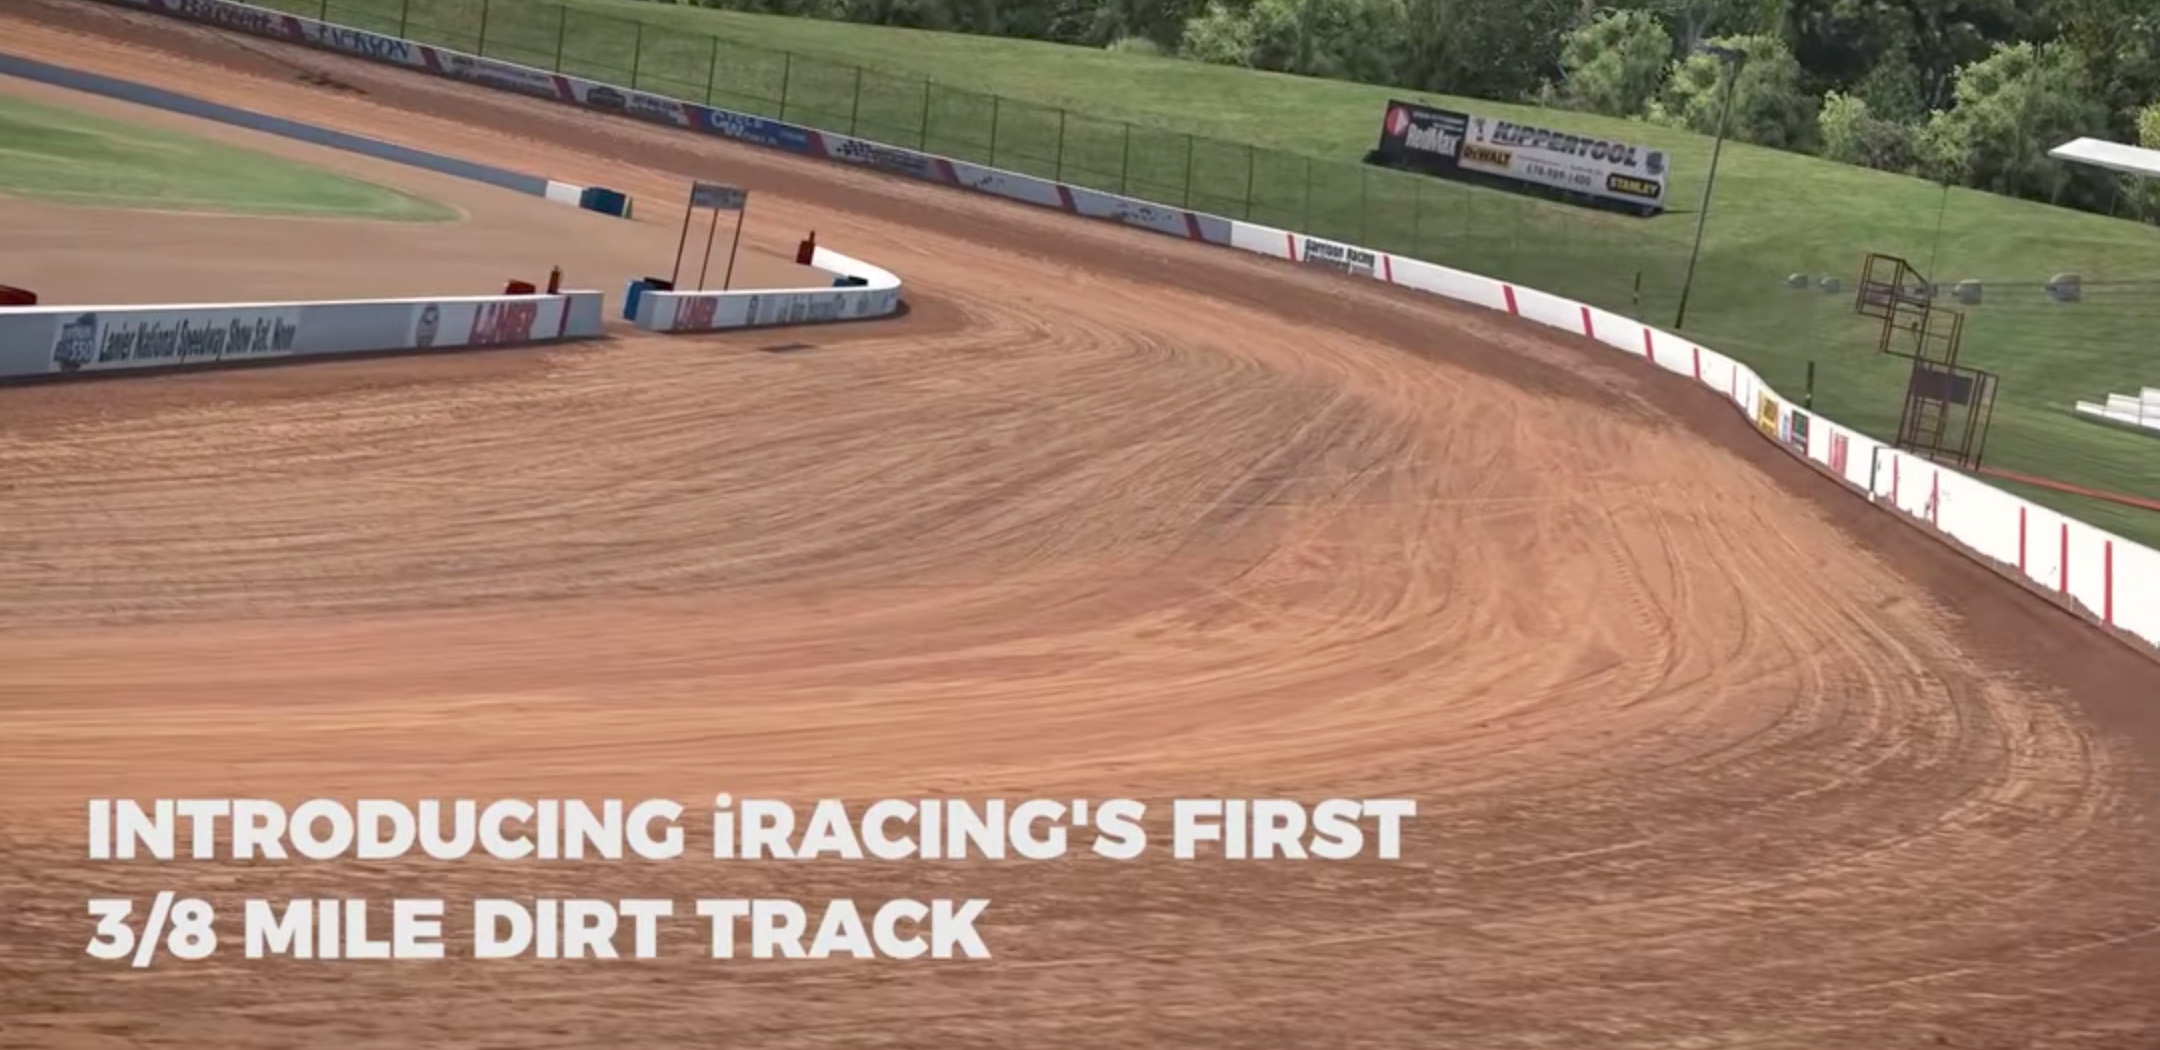 iRacing Dirt Modified and first 3/8 mile dirt track coming